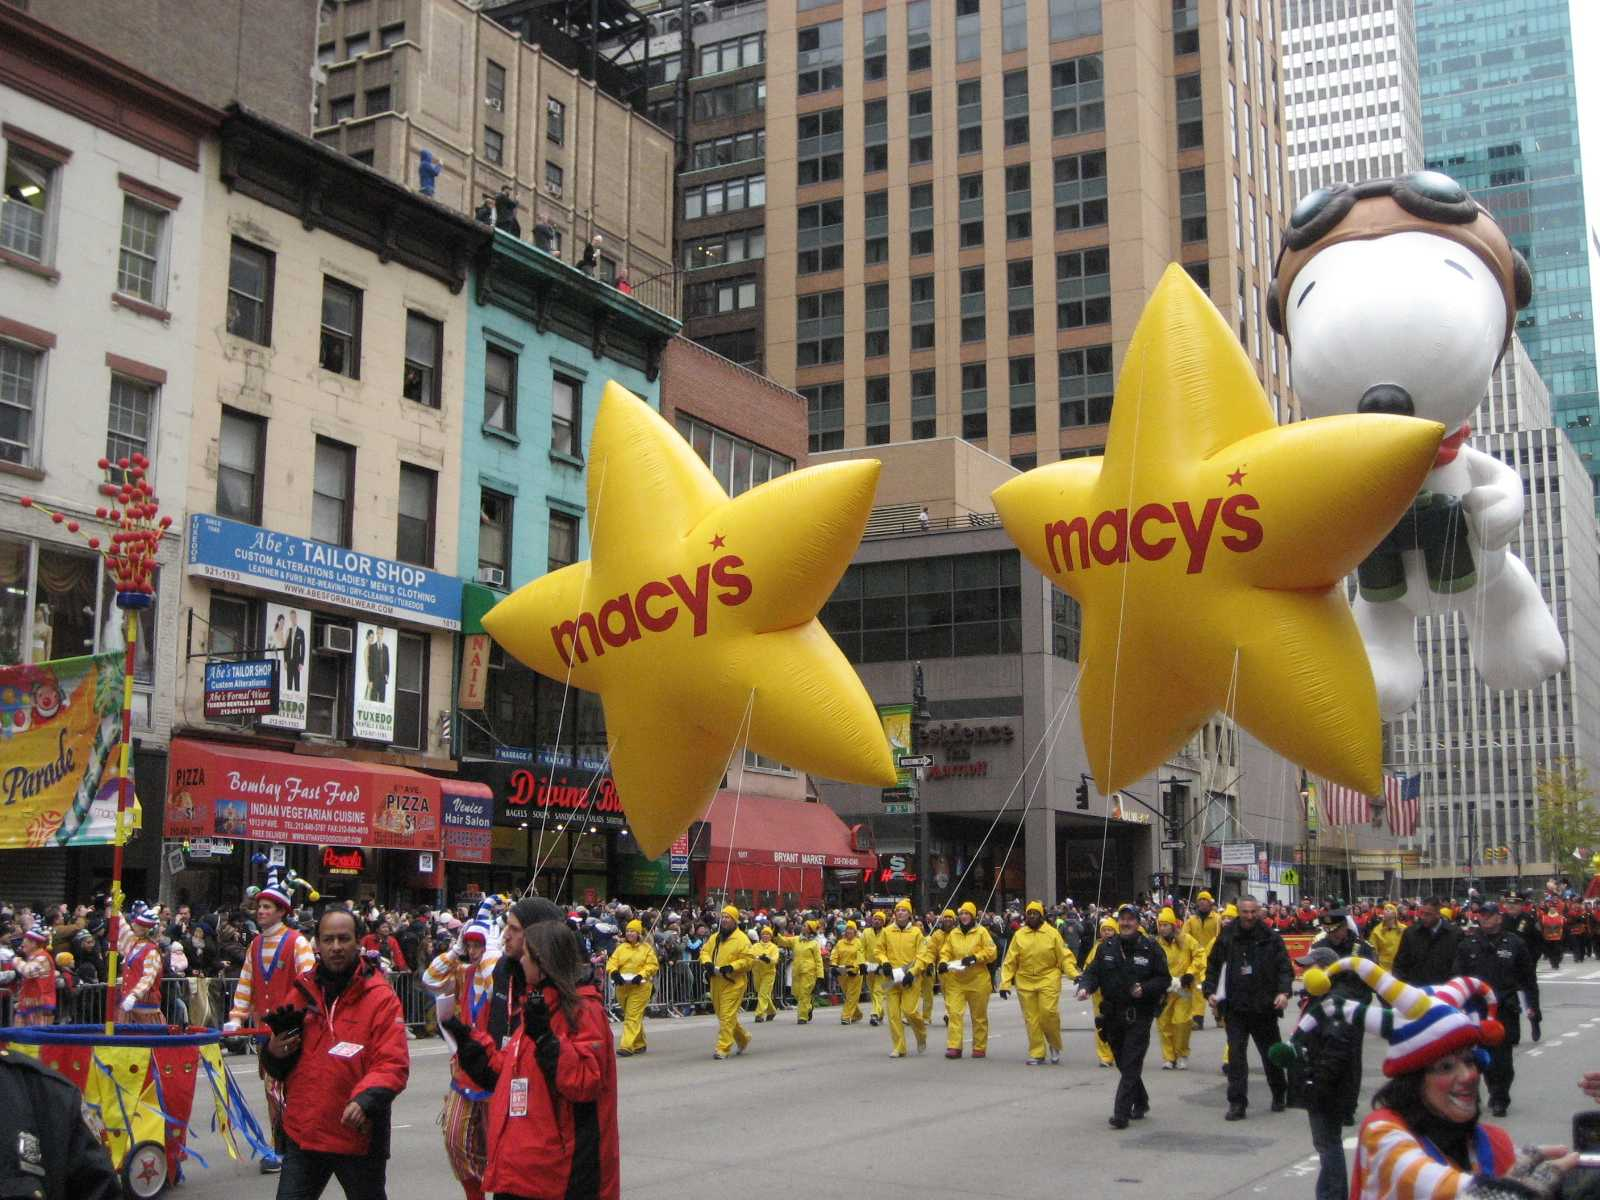 Parade with balloons